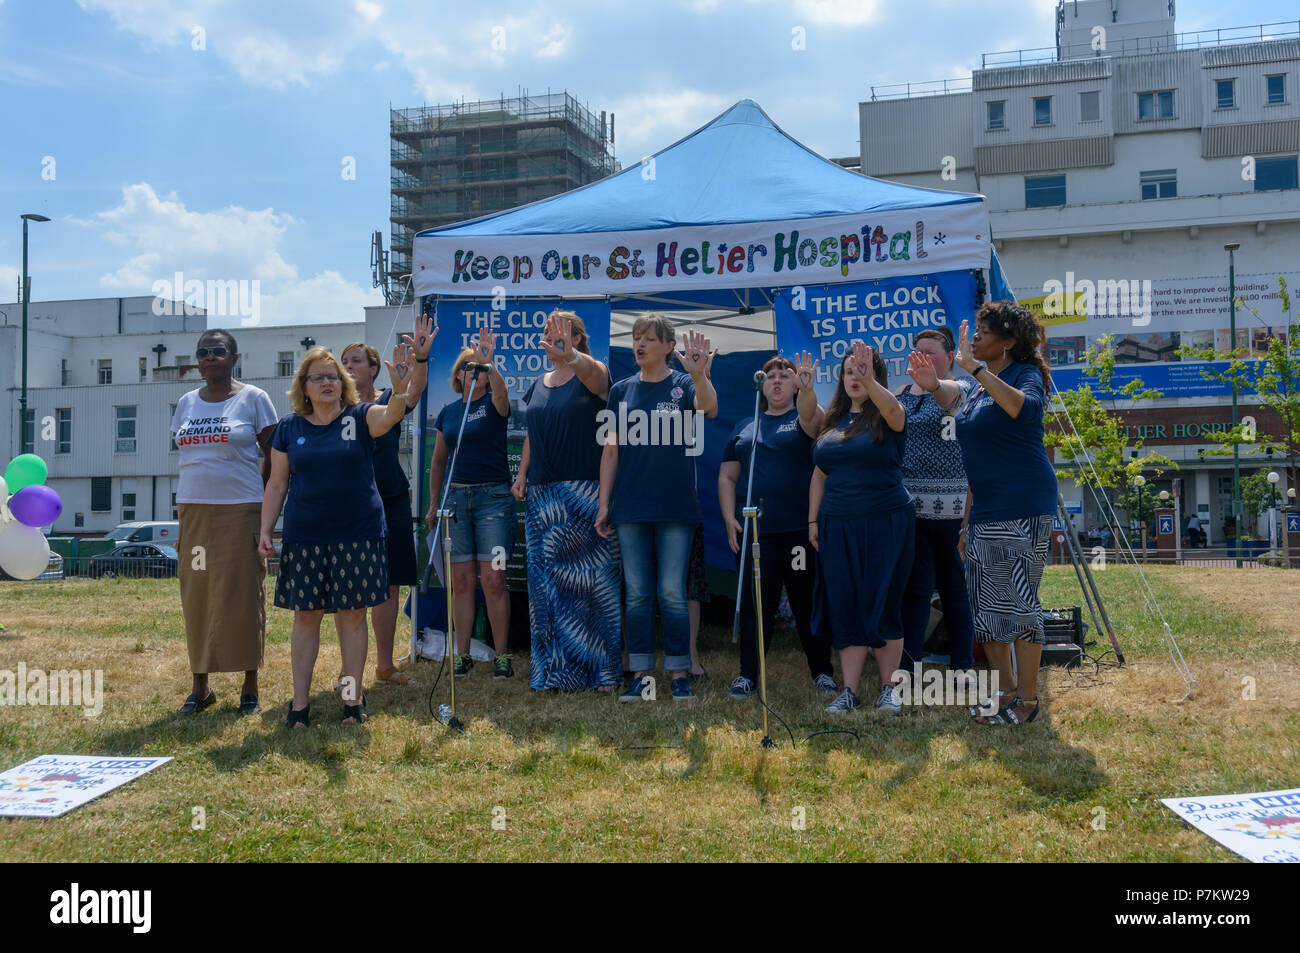 London, UK. 7th July 2018. The National Health SIngers greet the Keep Our St Helier Hospital (KOSHH) campaigners against the closure of acute facilities at Epsom and St Helier Hospitals in south London celebrating the 70th Birthday of the NHS who have marched from Sutton for a rally in front of St Helier Hospital.  The closures are prompted by government cuts which call for huge savings by th Credit: Peter Marshall/Alamy Live News - Stock Image